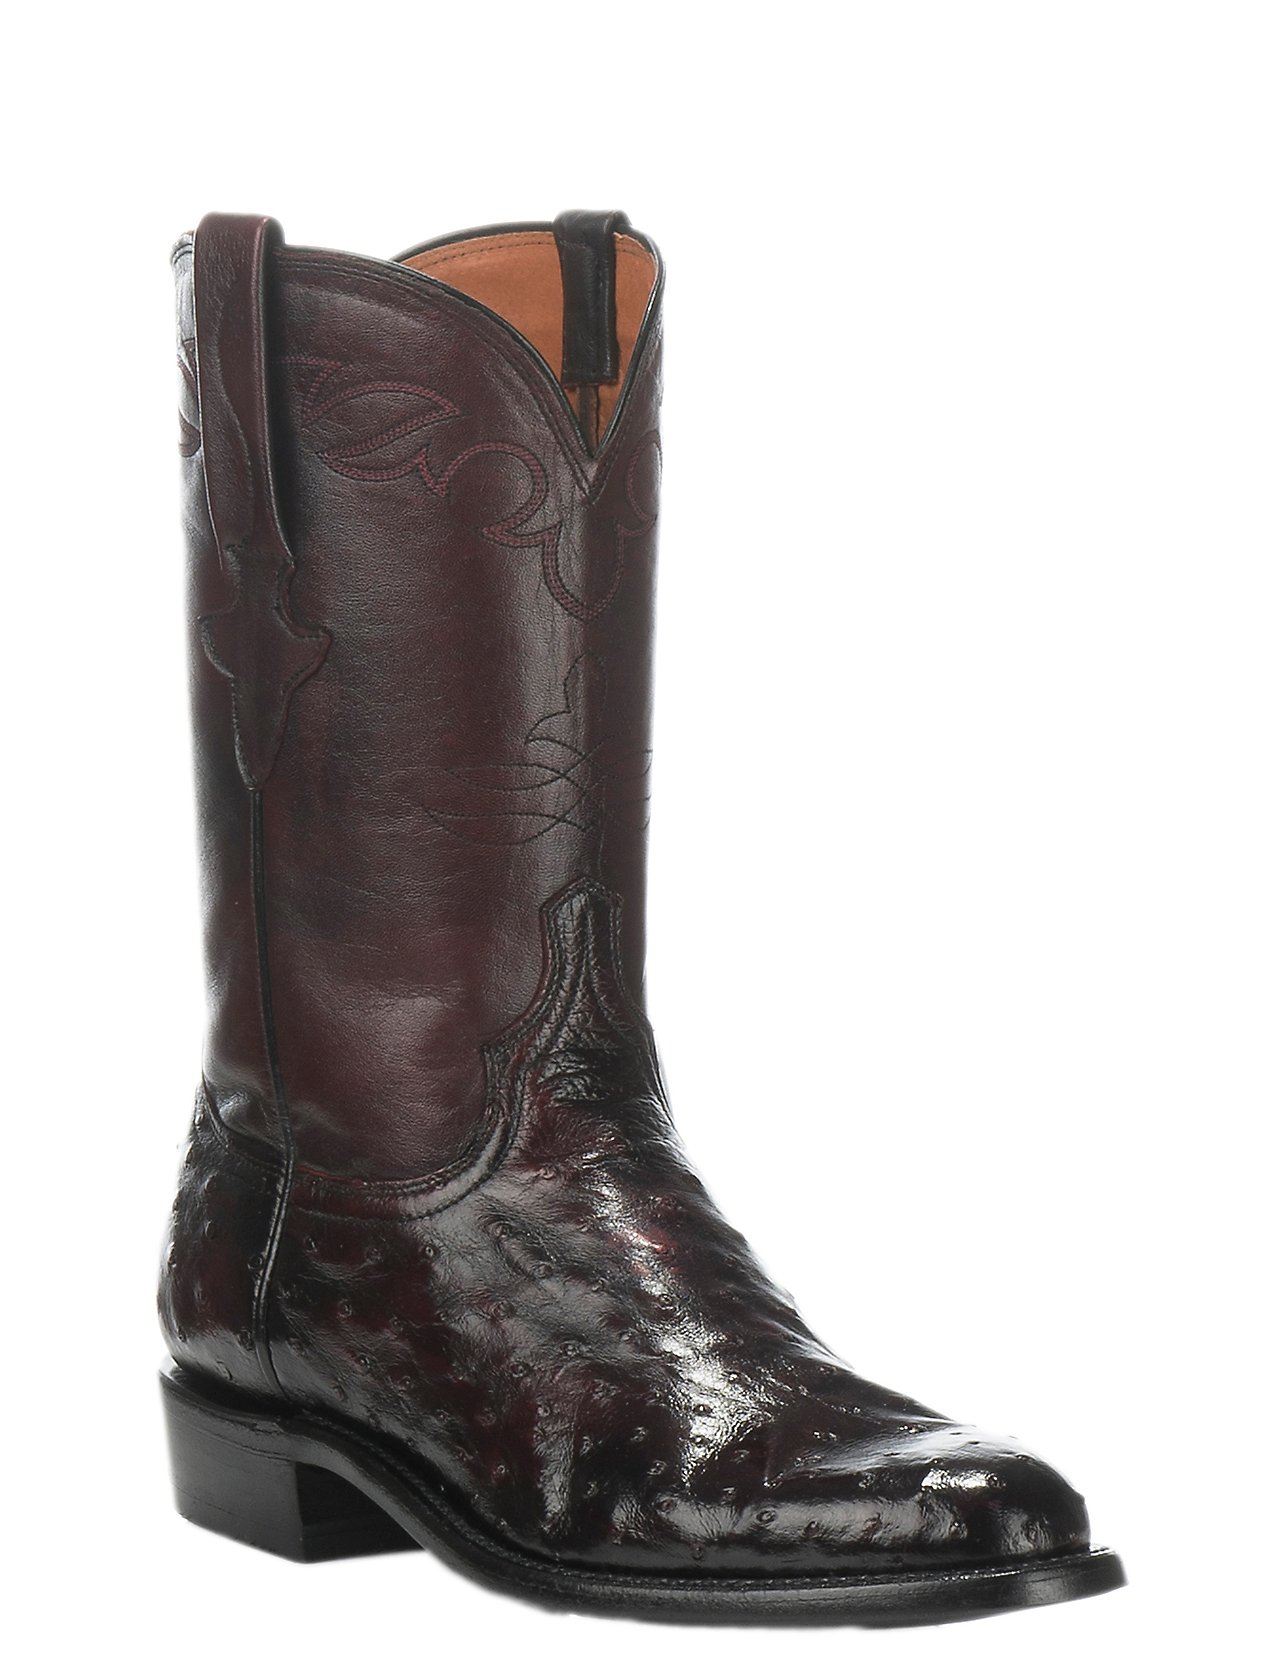 leather Country boots - Black Blue Bird Shoes oCYES